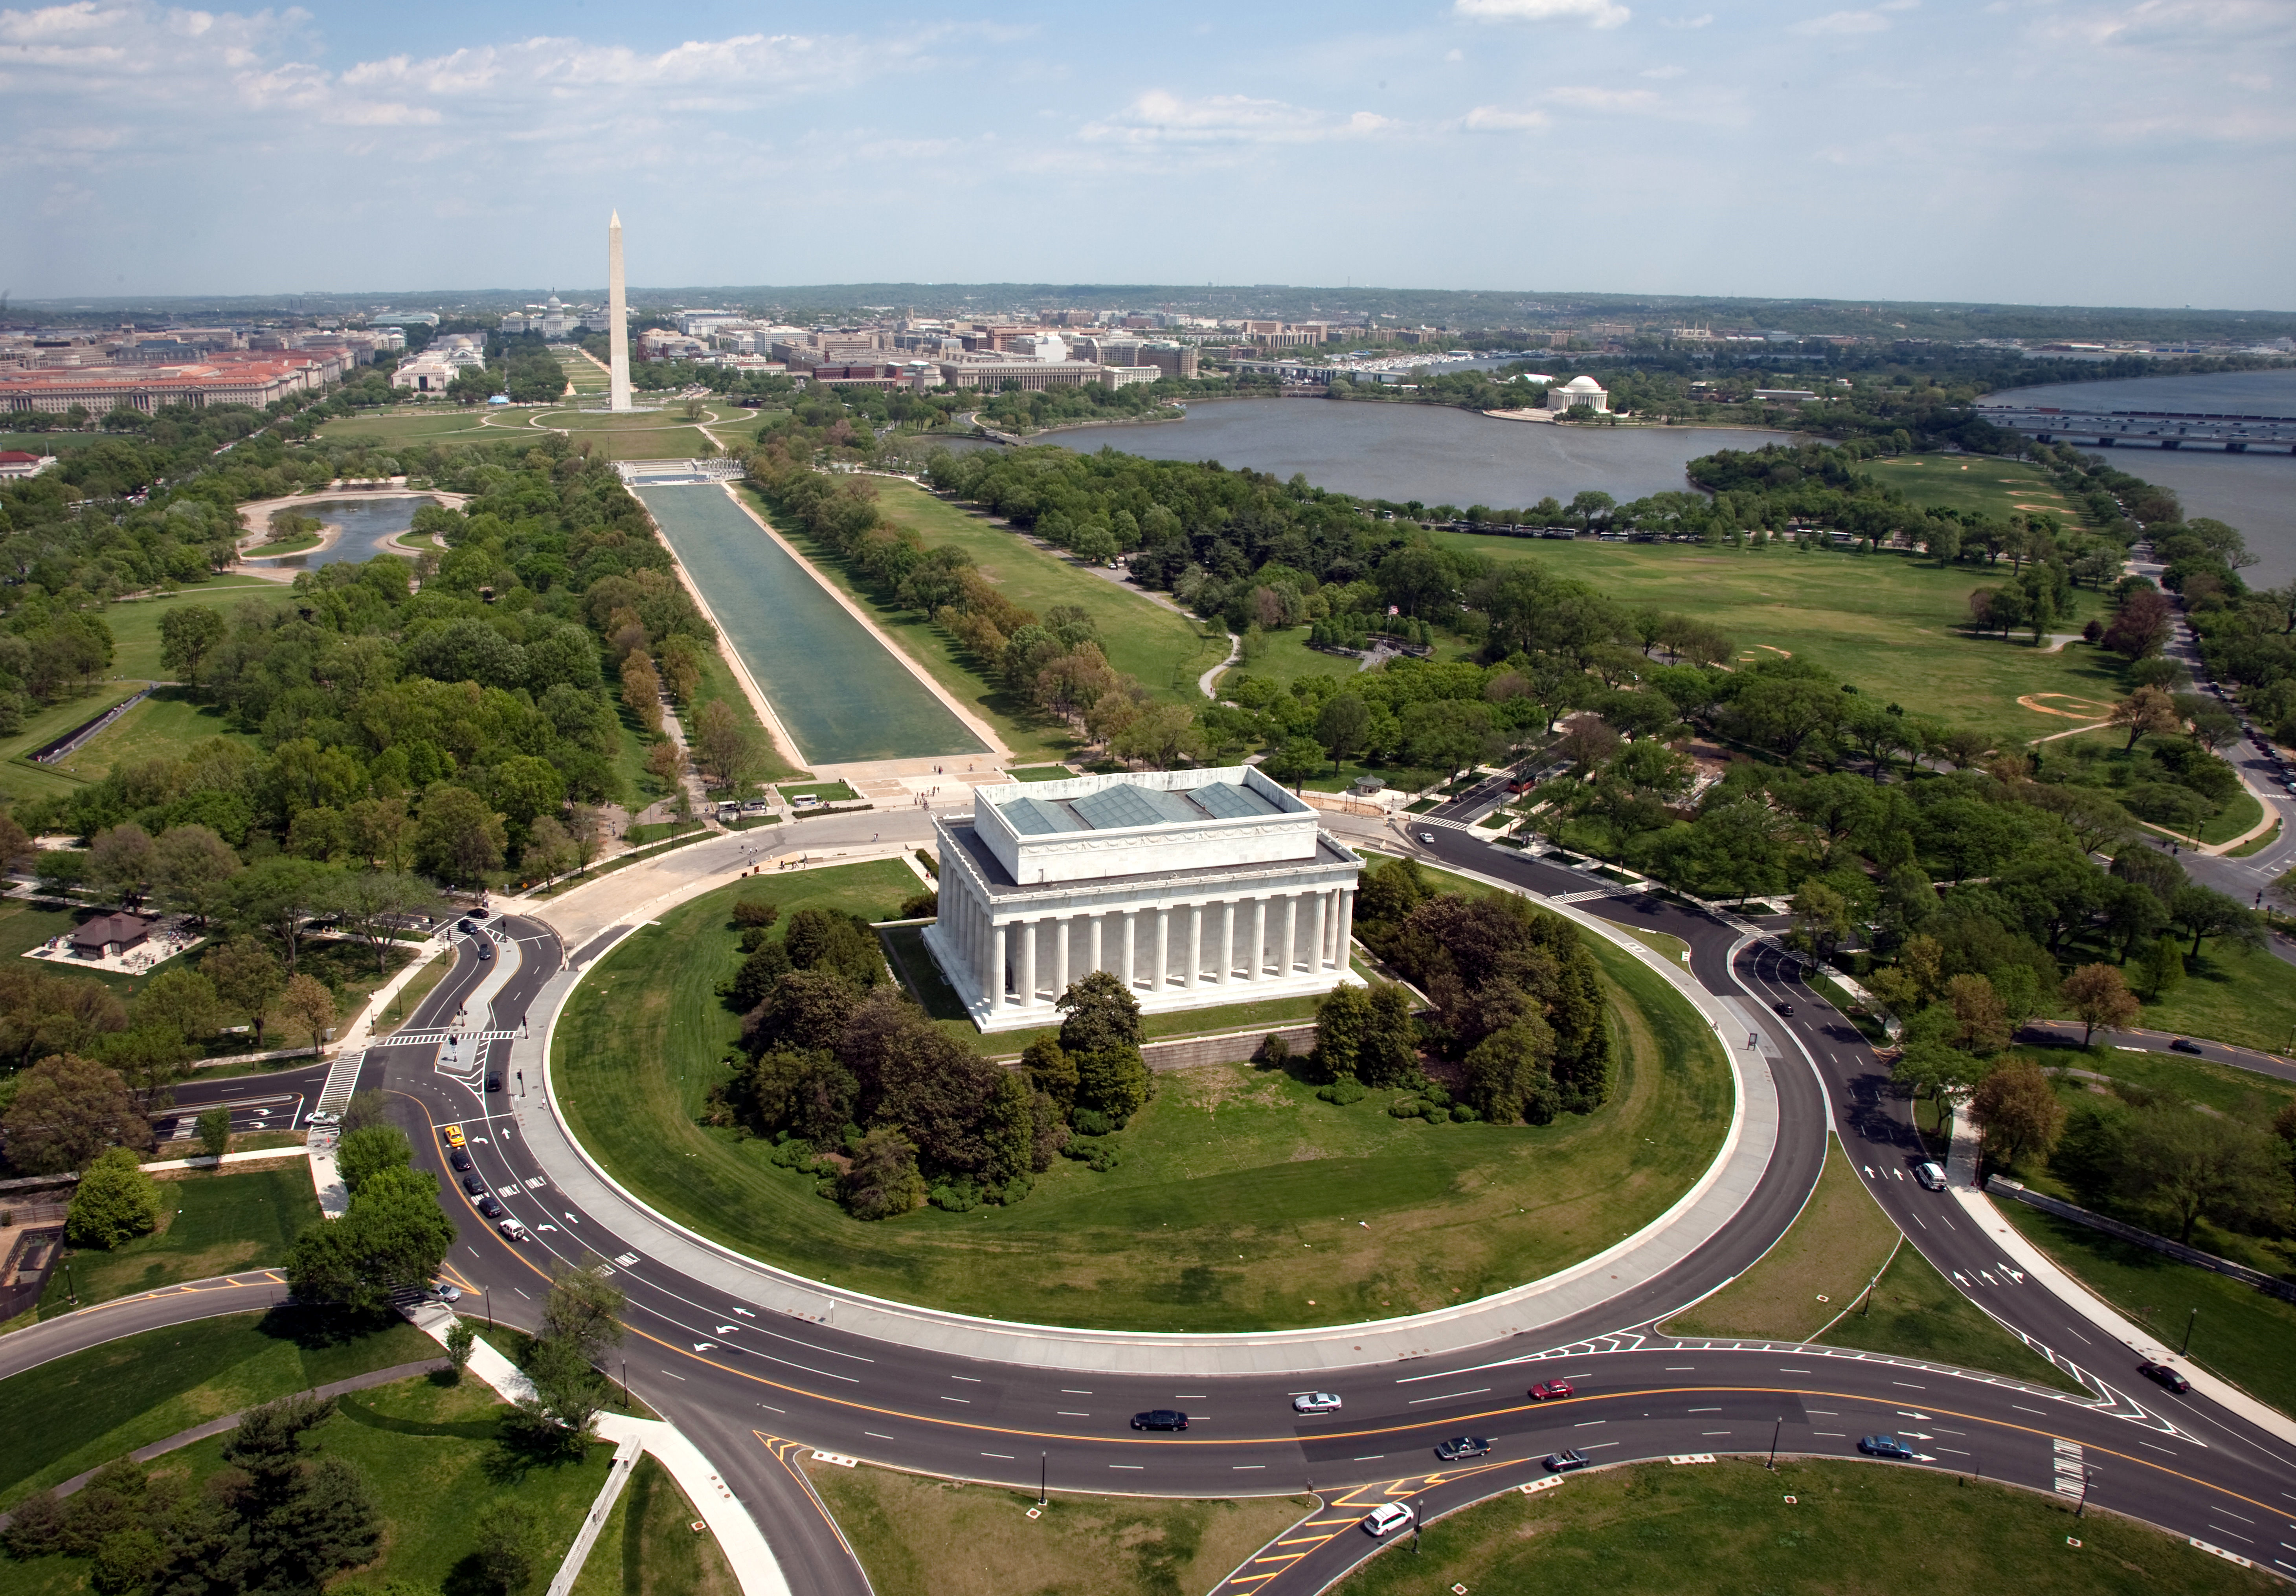 File:Aerial view of Lincoln Memorial - west side.jpg - Wikimedia Commons